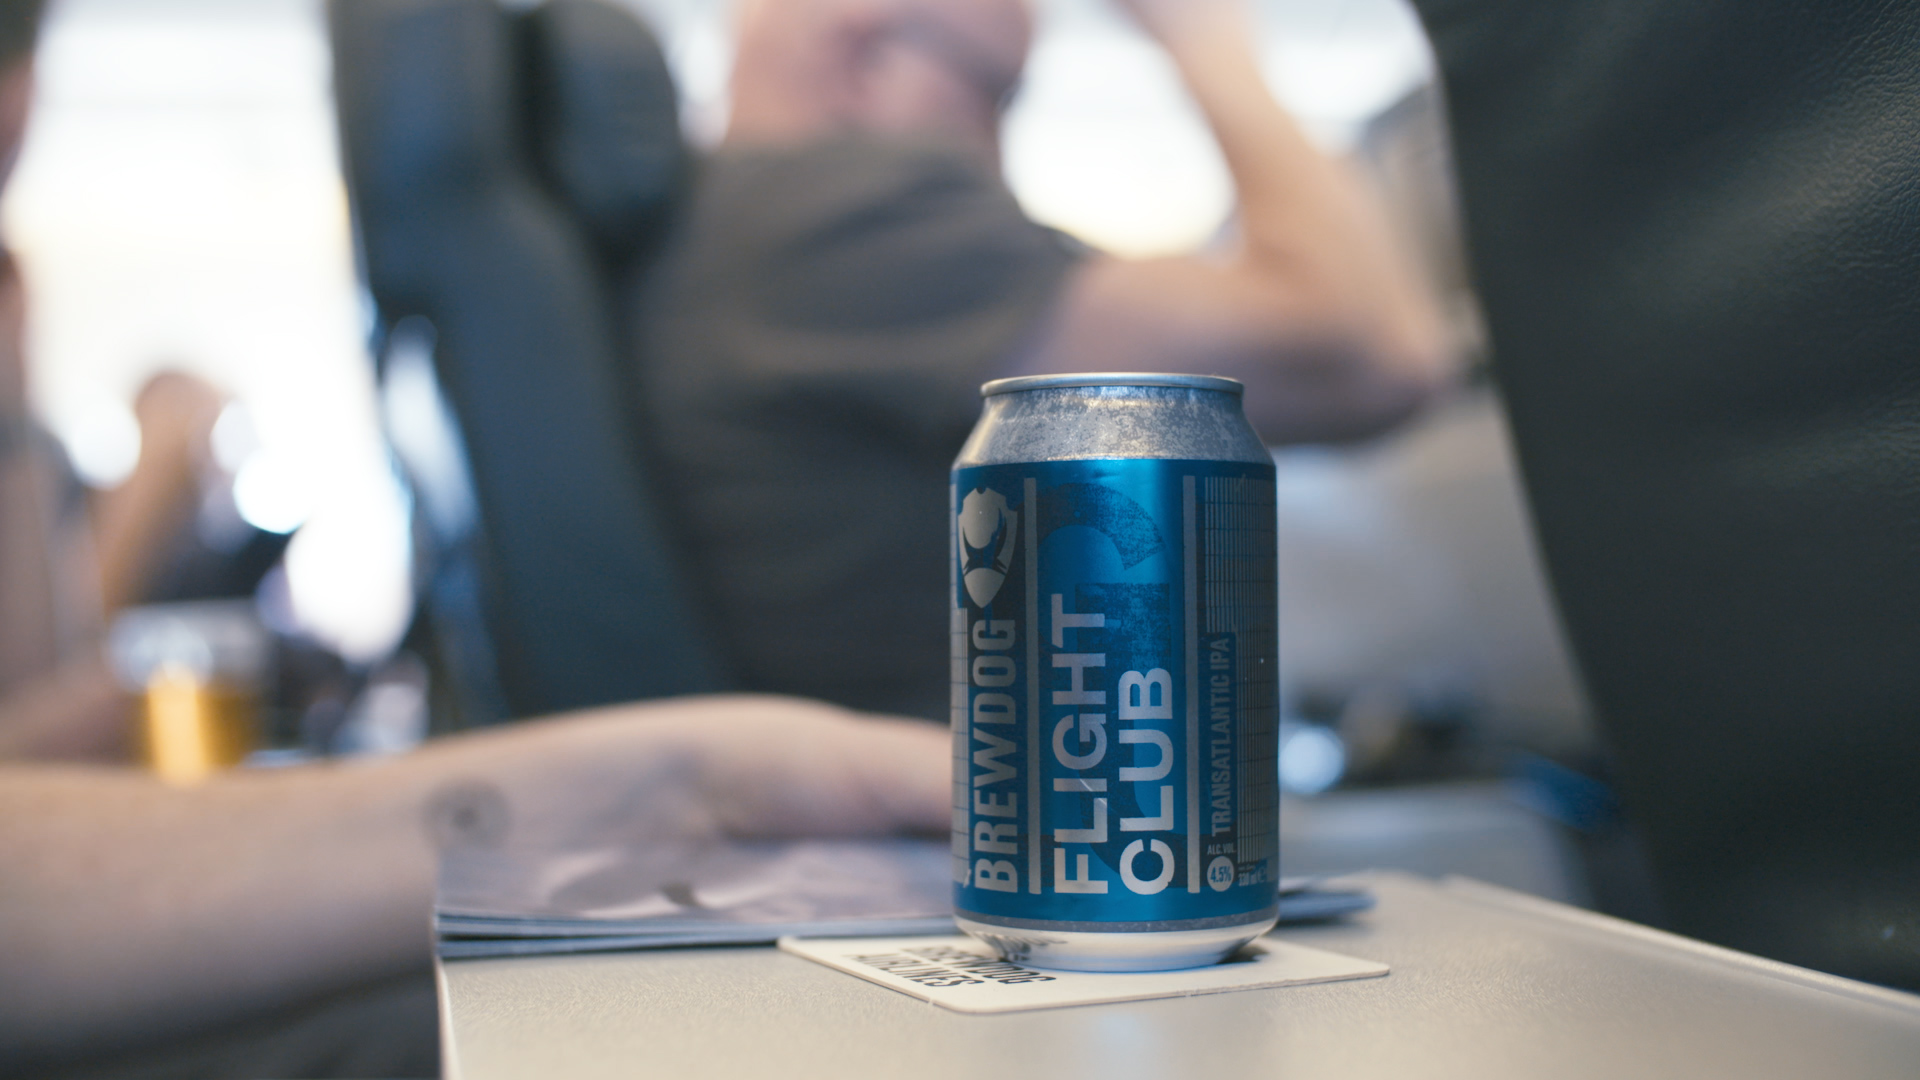 BrewDog Flight Club, a 4.5% IPA brewed specifically for the maiden flight on BrewDog Airlines